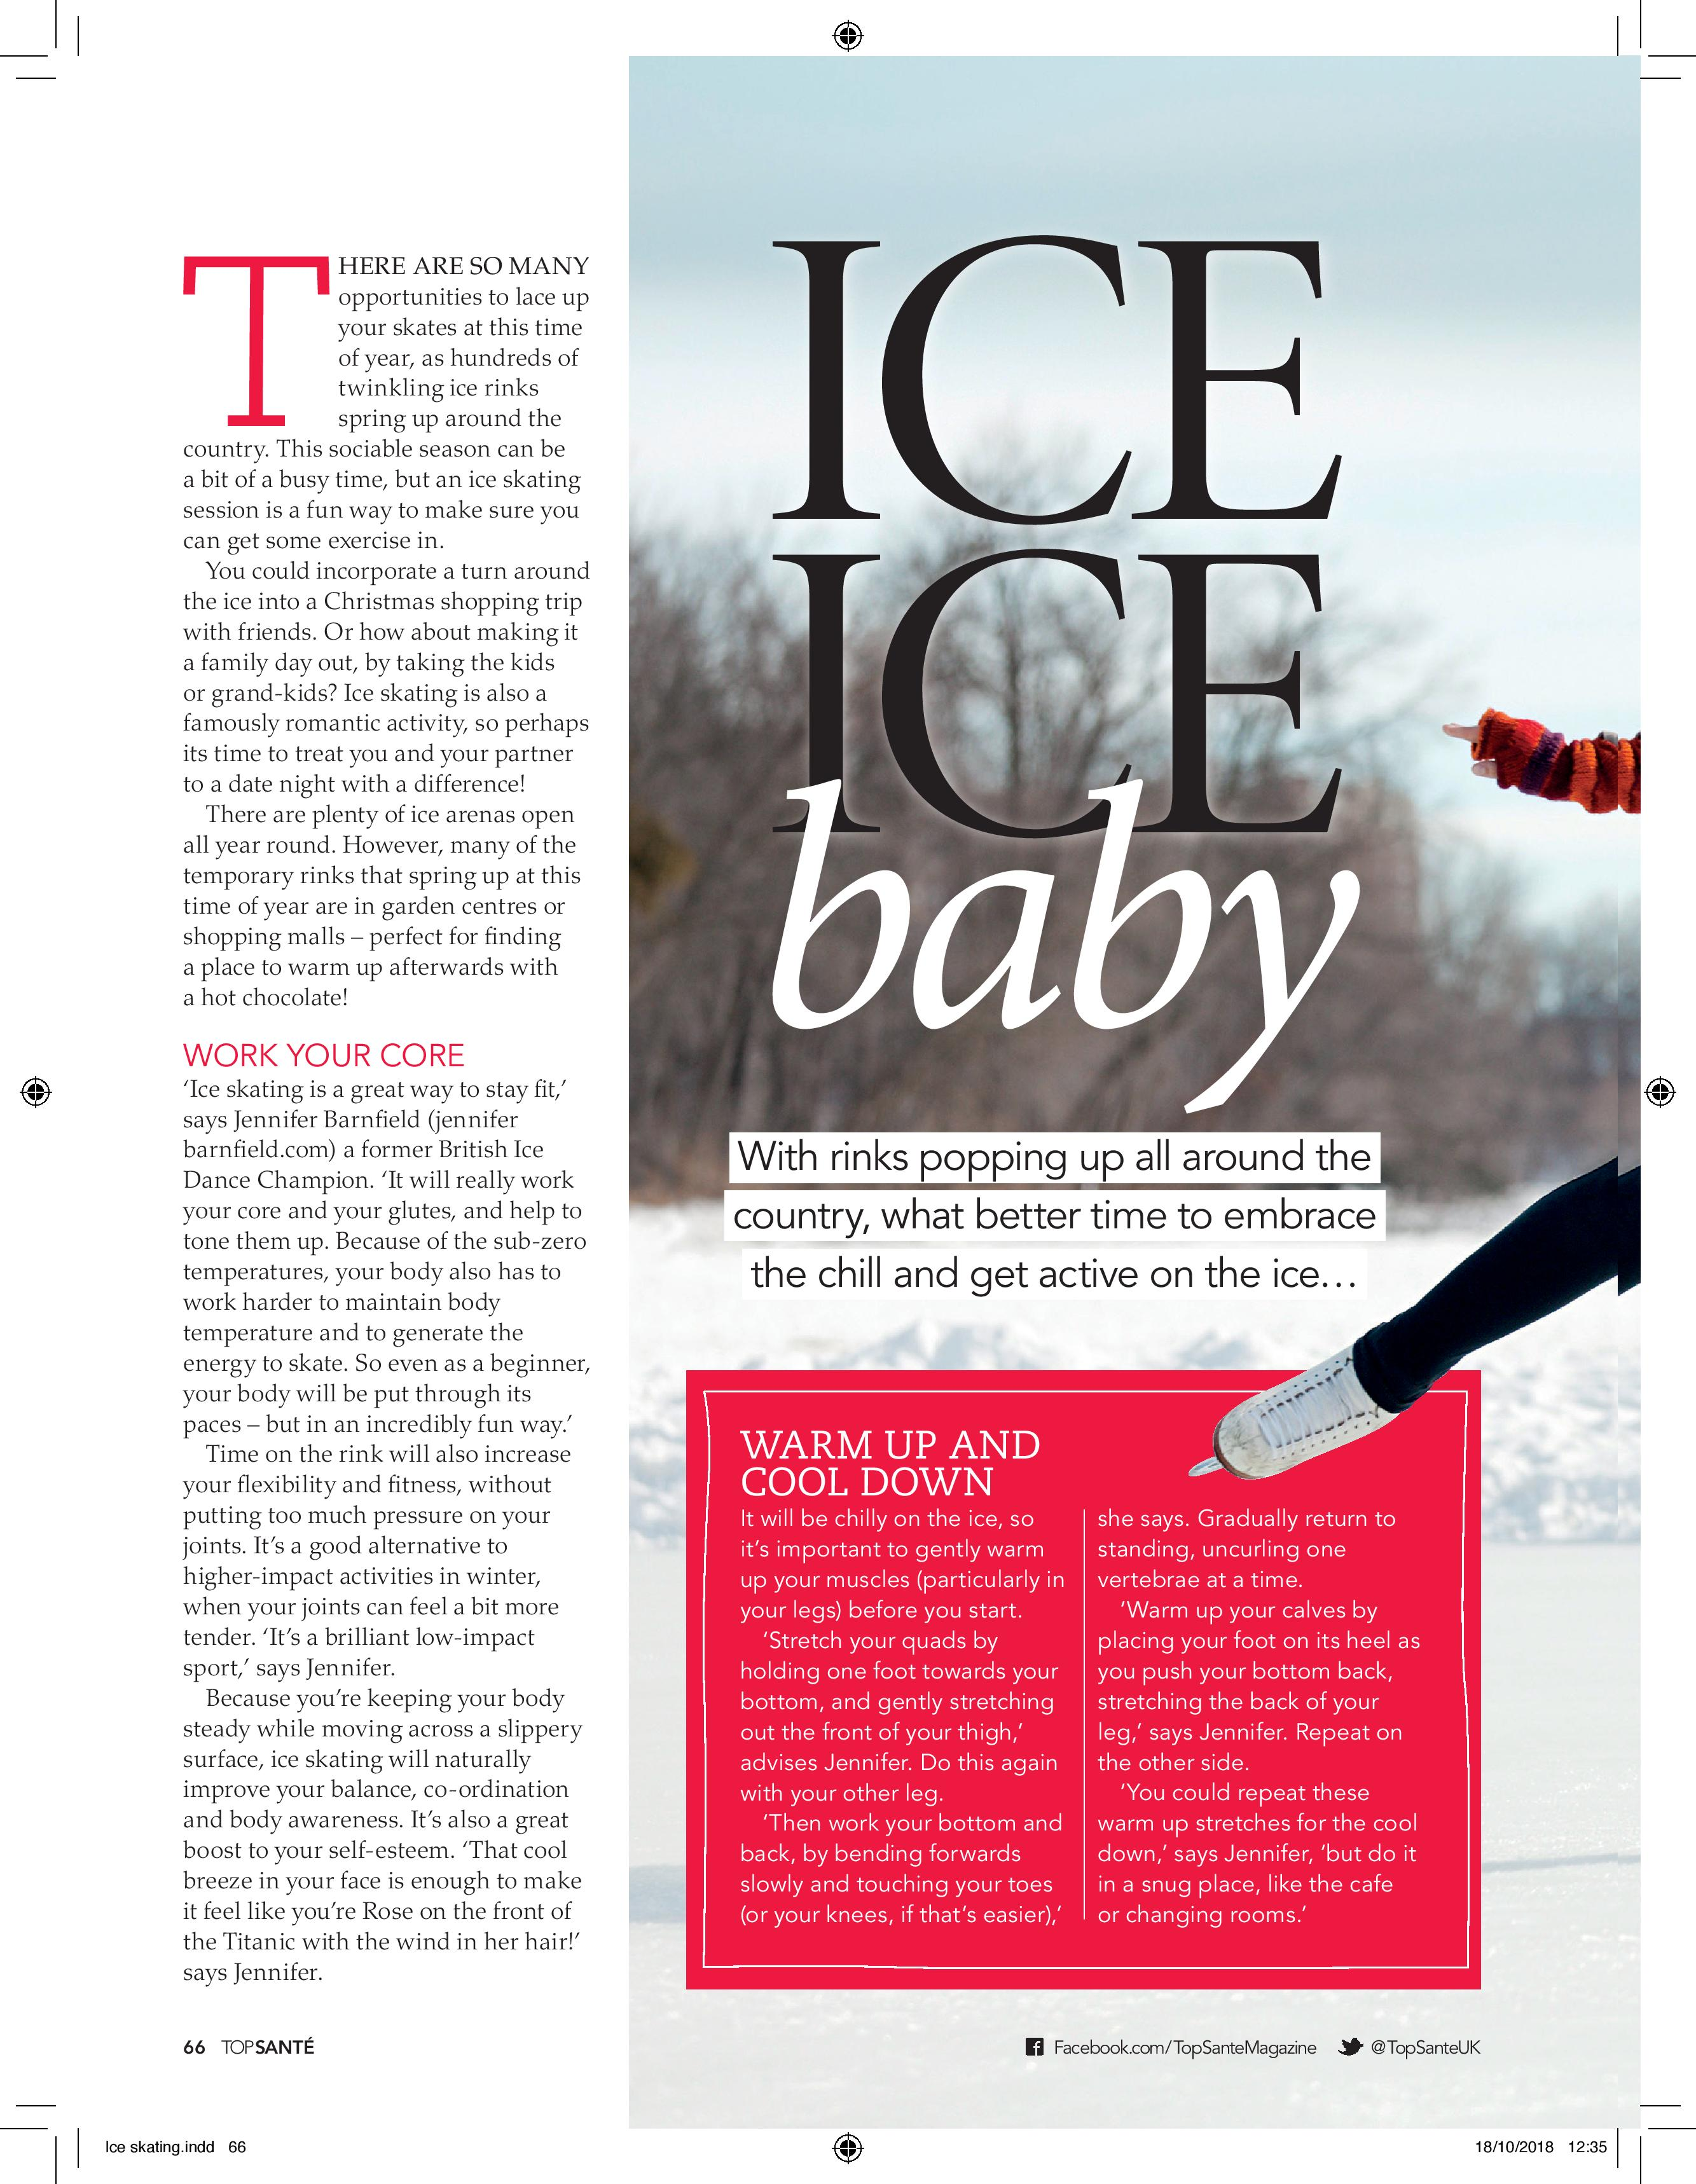 Ice, Ice Baby (Top Sante, 30th Oct 2018)